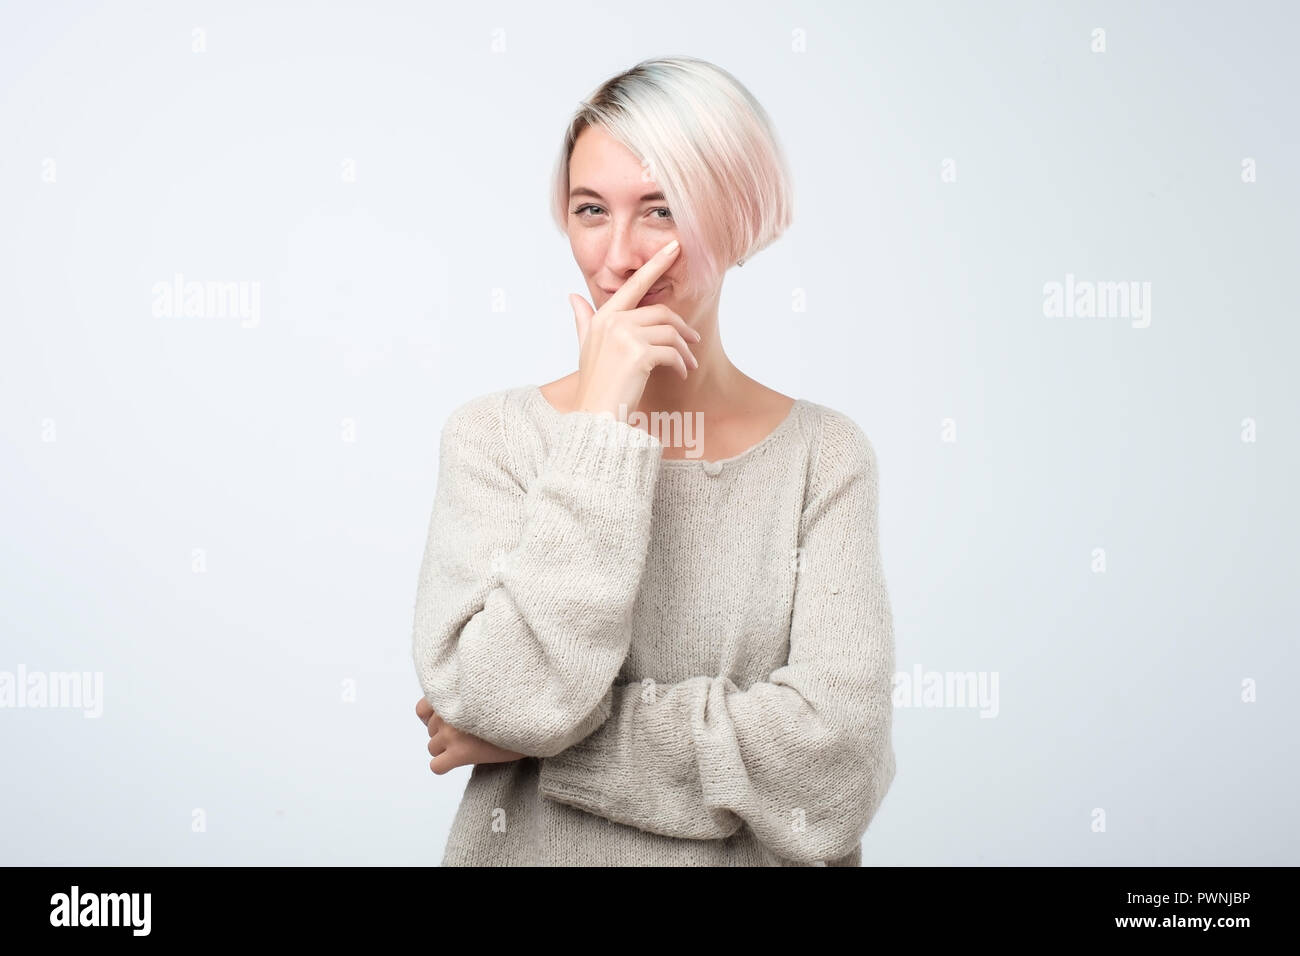 Cunning beautiful woman with dyed short hair looking holding hand under chin intending to realize tricky plan. - Stock Image